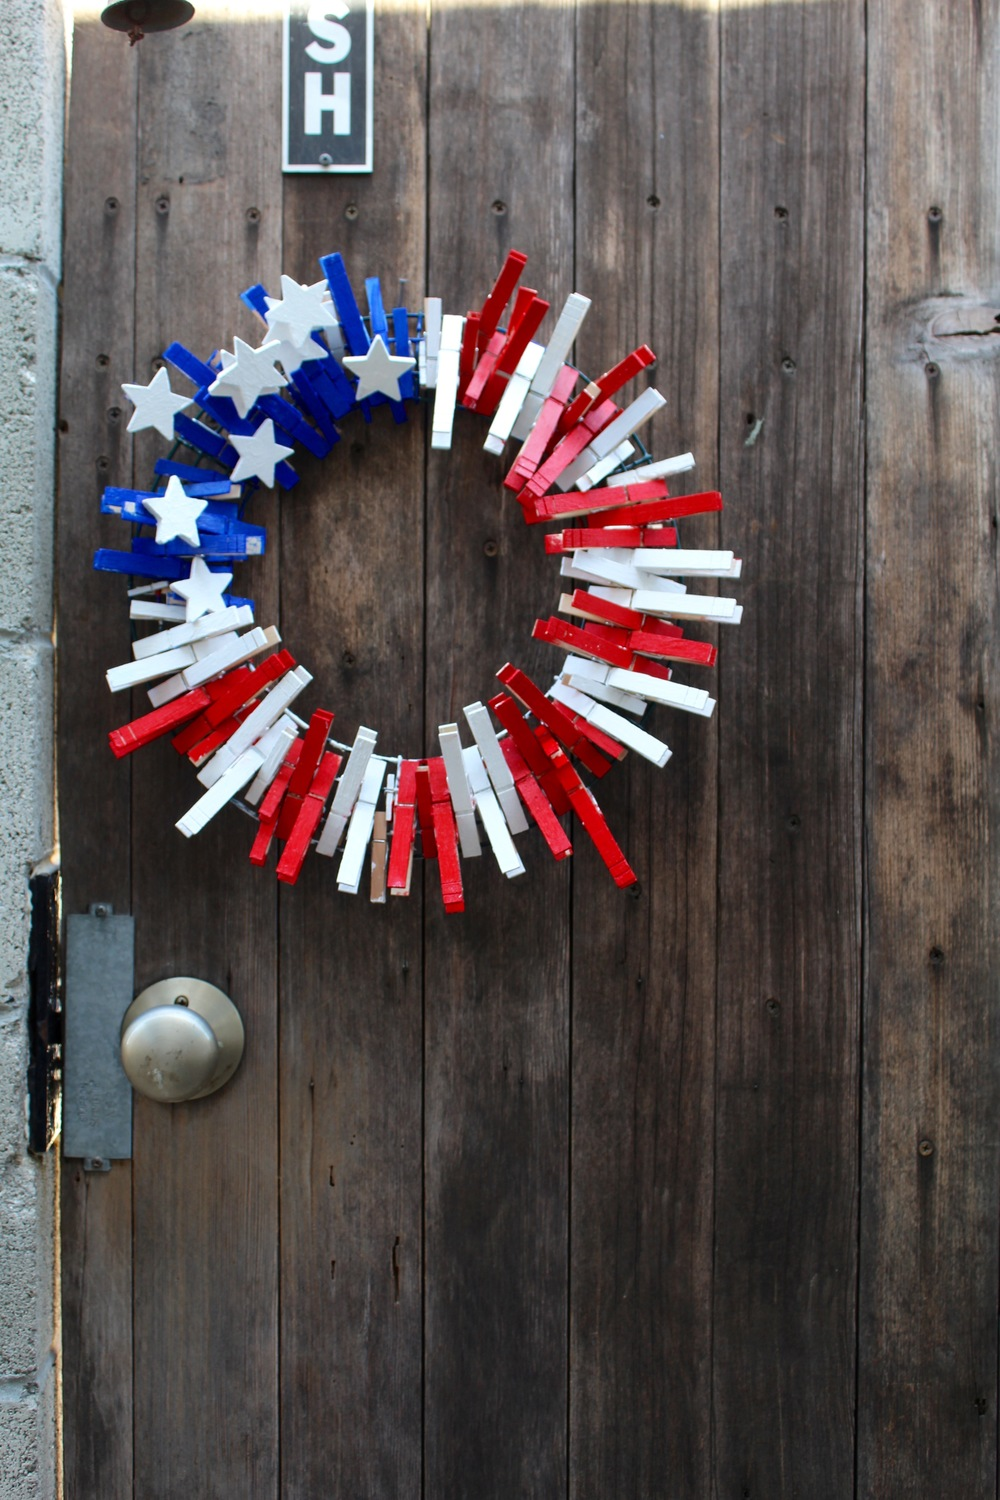 The Rustic Wreath on the Rustic Door.